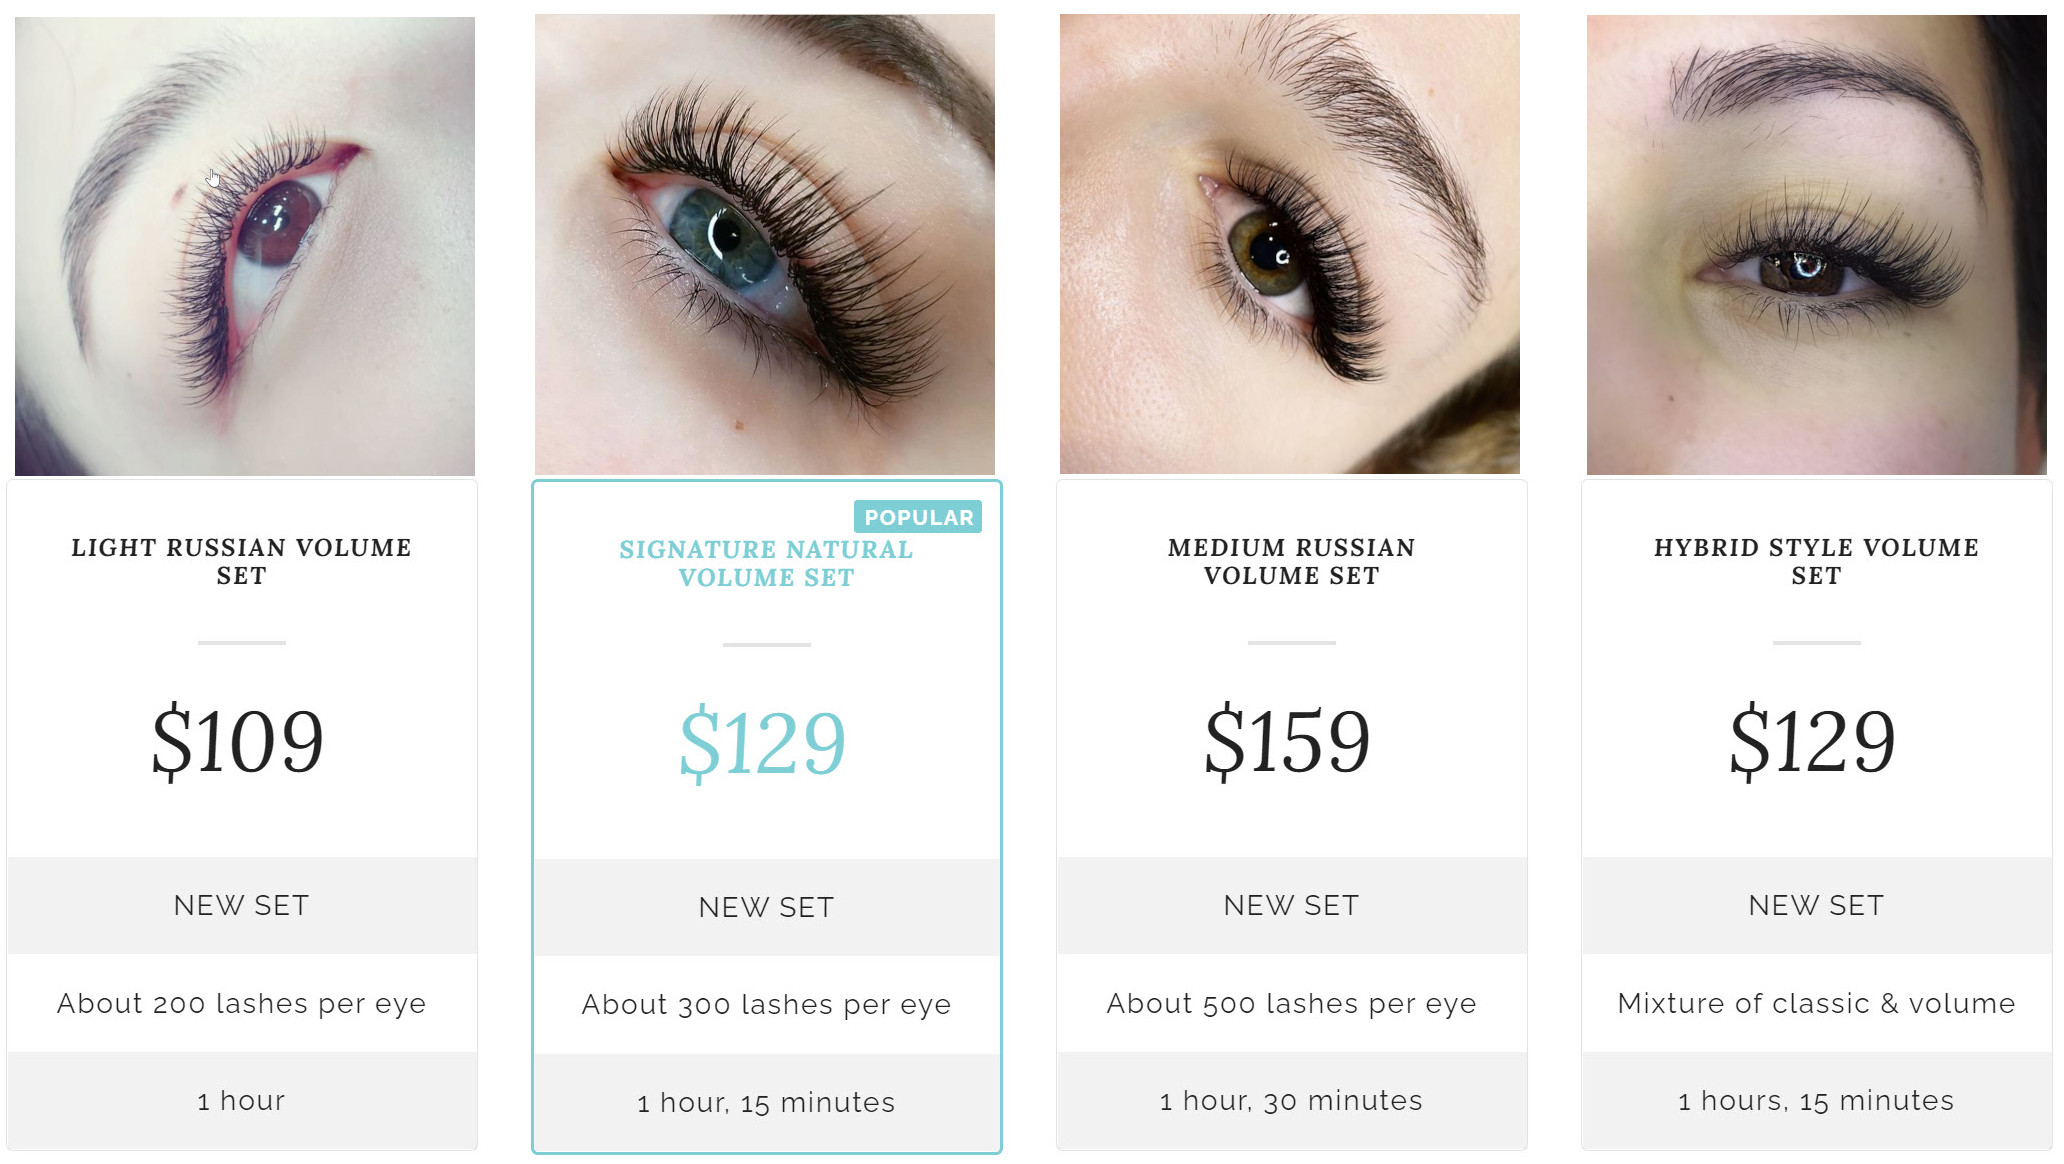 Russian Volume Eyelash Extensions Price Auckland CBD north west south east 2